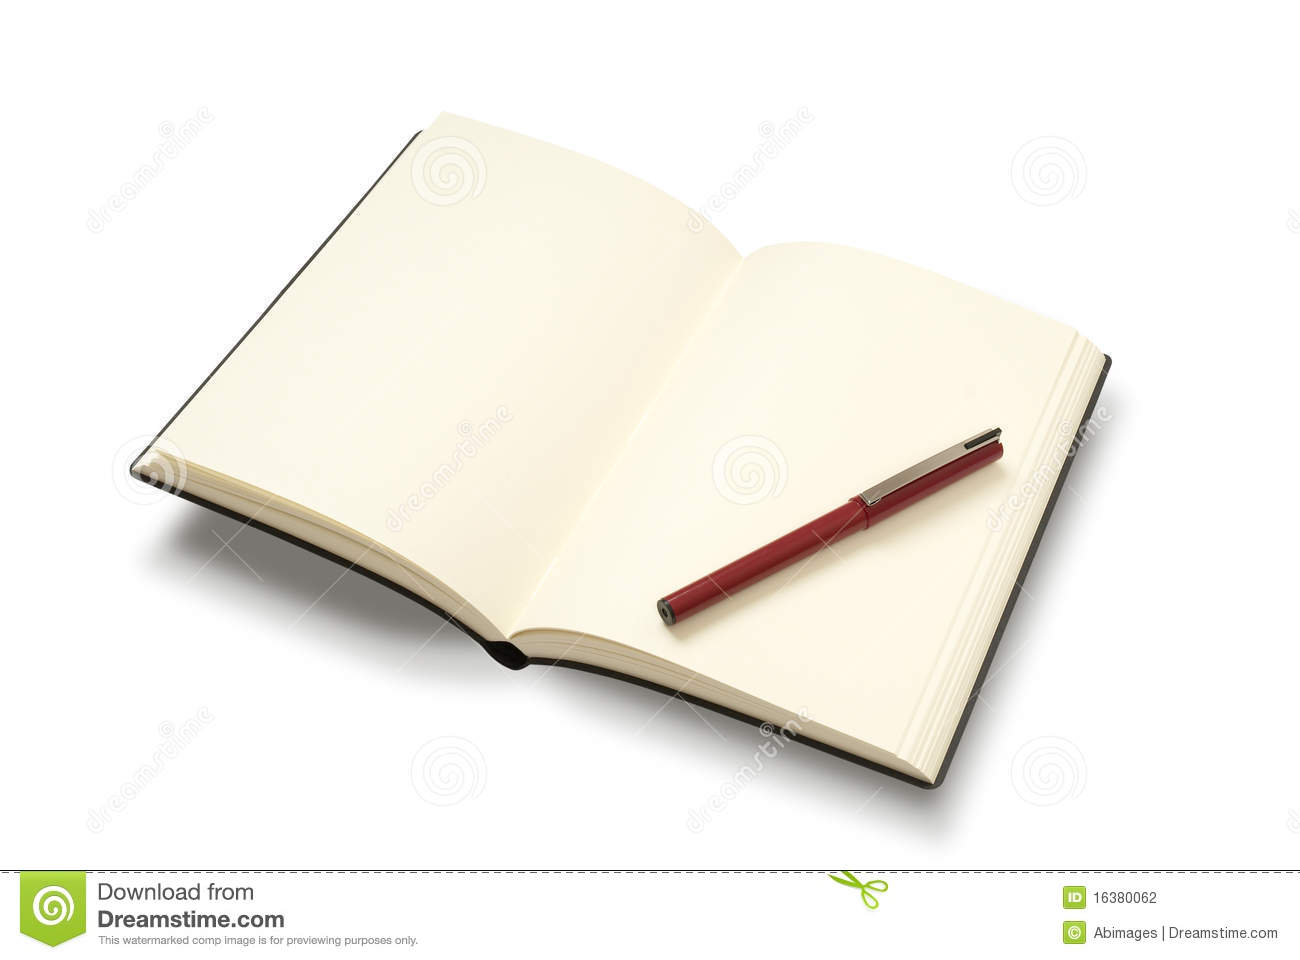 Notebook And Pen Sketch Stock Vector Art More Images Of: Open Notebook With Pen Stock Photography